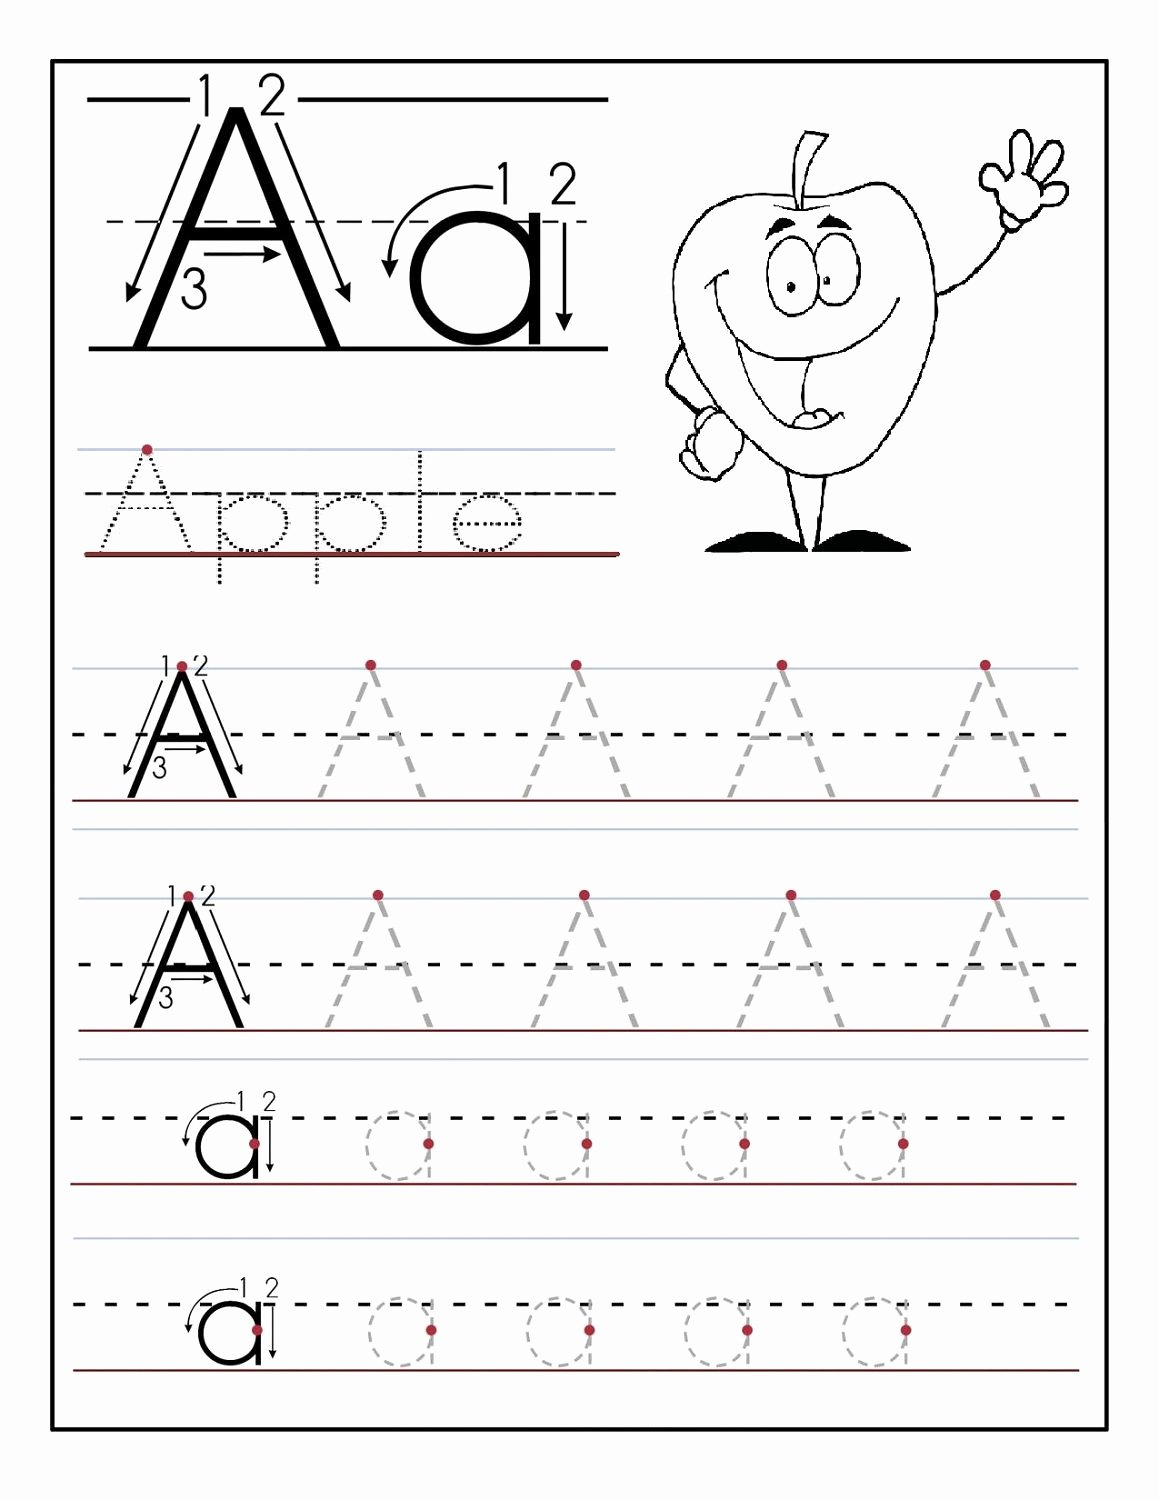 Free Traceable Alphabet Worksheets for Preschoolers Printable Trace Letter A Sheets to Print